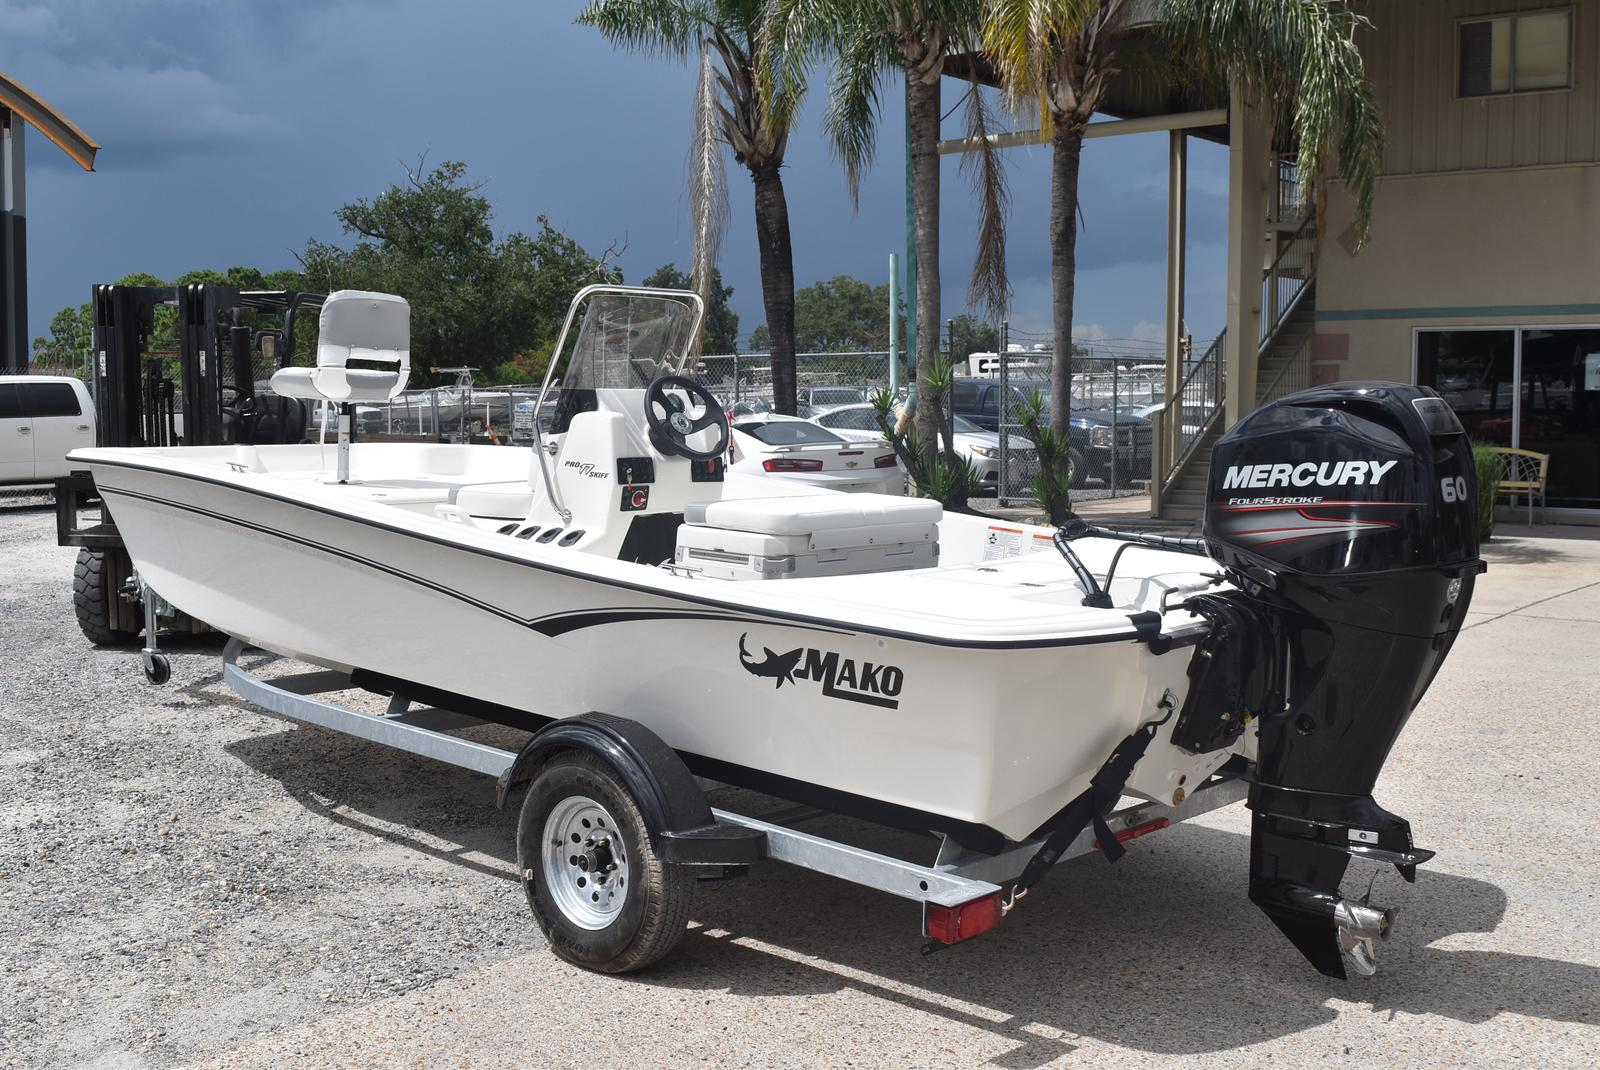 2020 Mako boat for sale, model of the boat is Pro Skiff 17, 75 ELPT & Image # 223 of 702